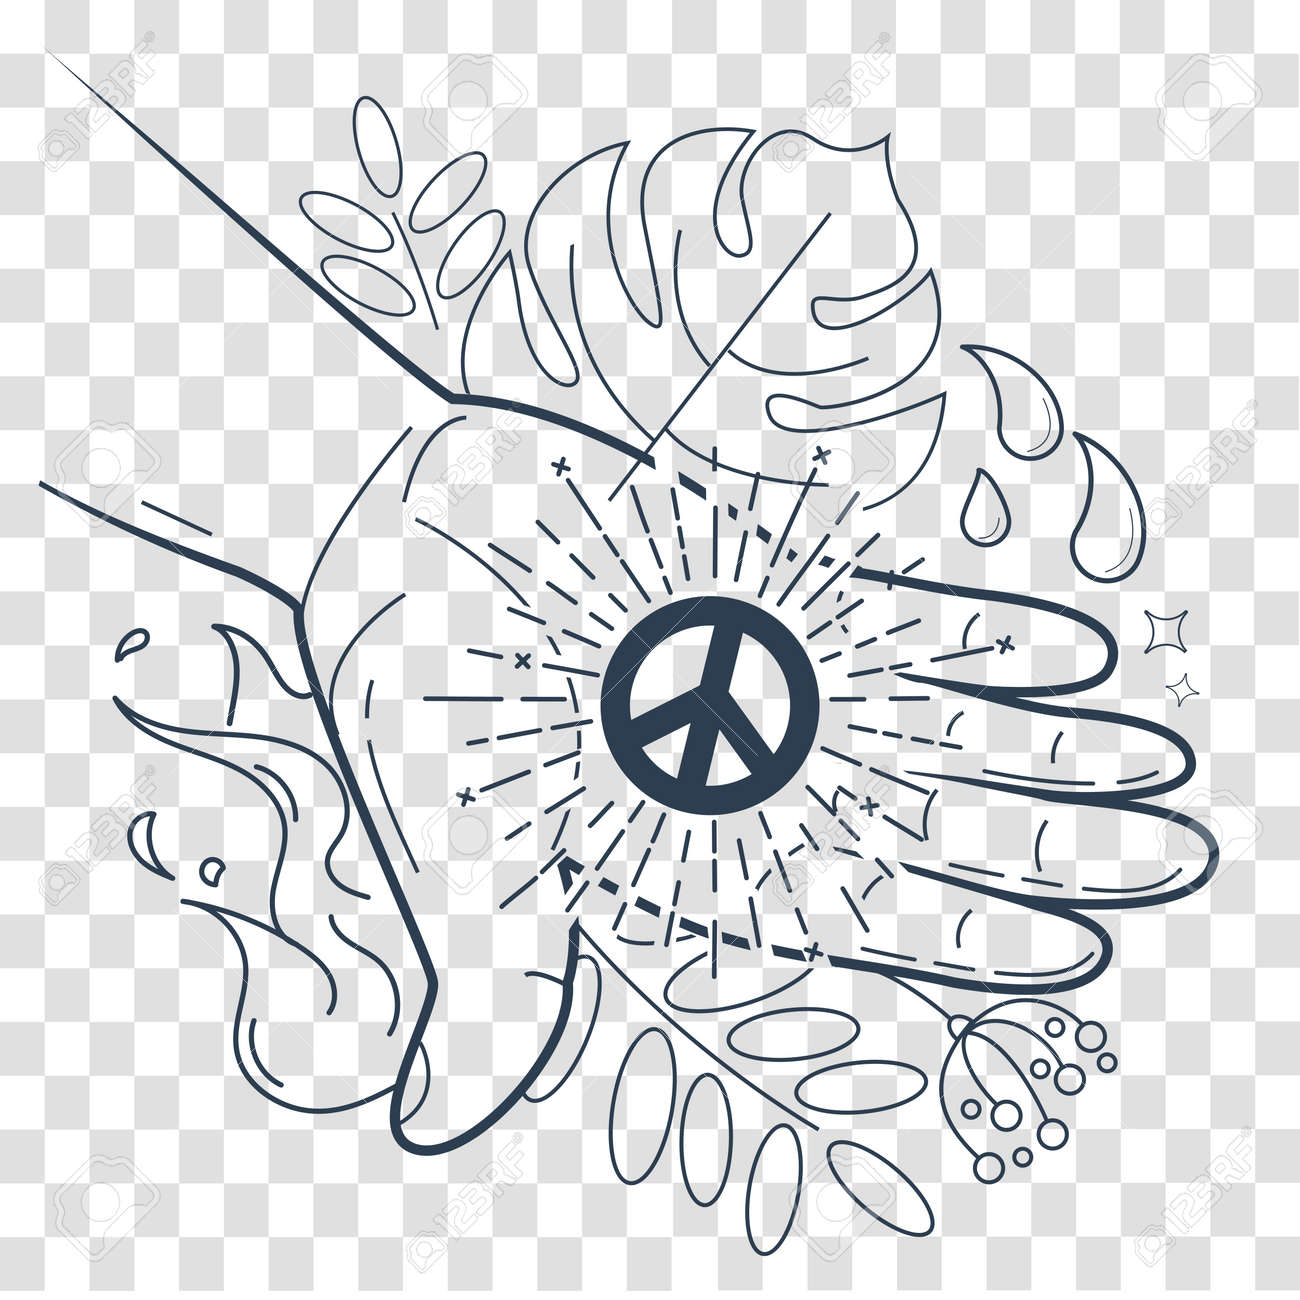 the concept of peace in the form of a hand with the symbol of Modern Technology in the World the concept of peace in the form of a hand with the symbol of peace giving